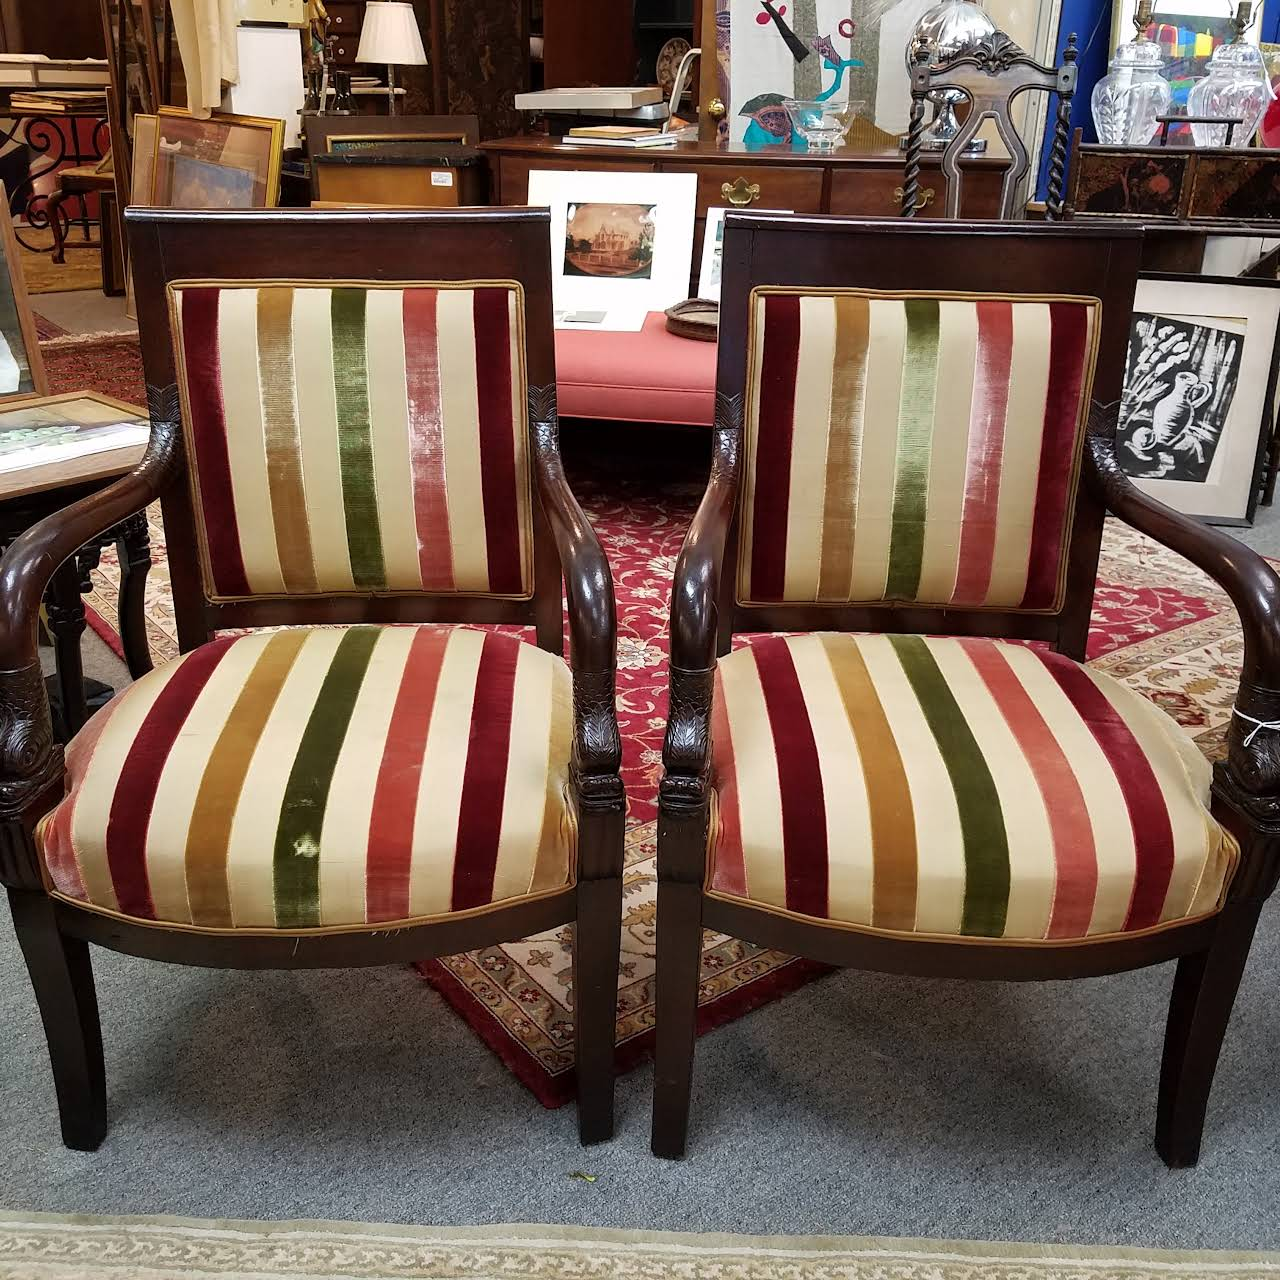 Vintage Home Decor - Consignment Shop in Old Saybrook